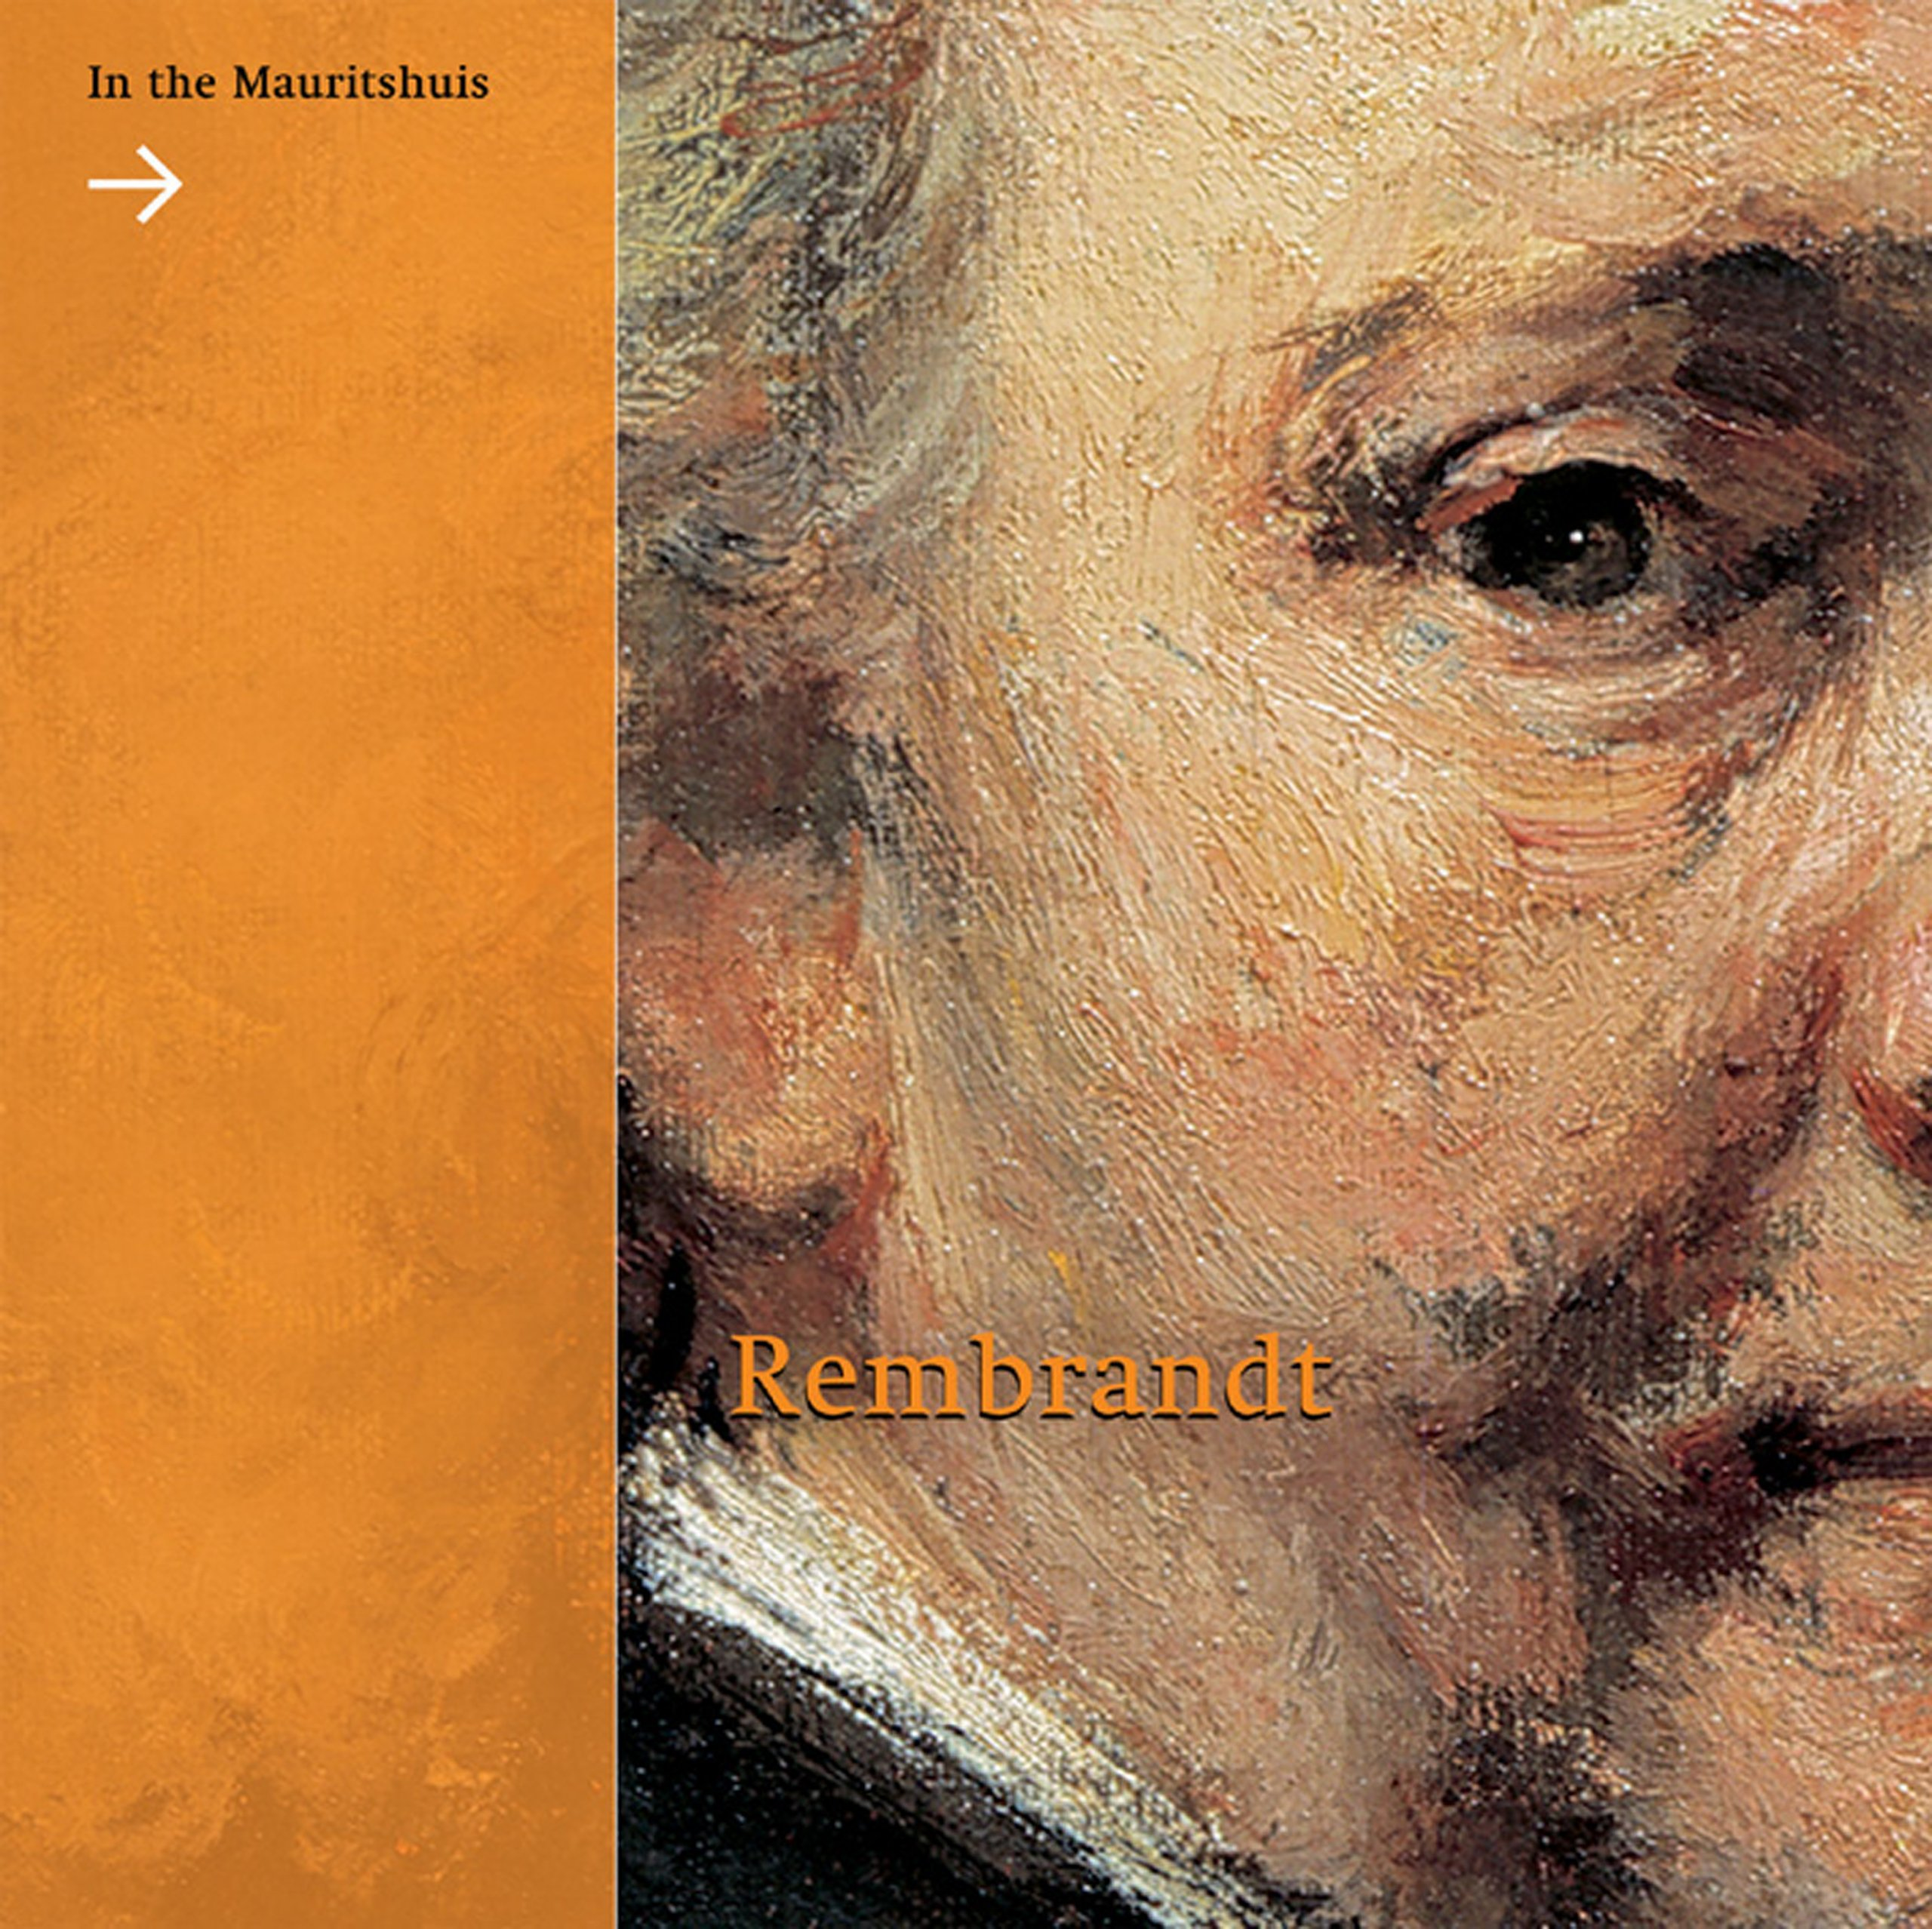 Download Rembrandt: In the Mauritshuis PDF